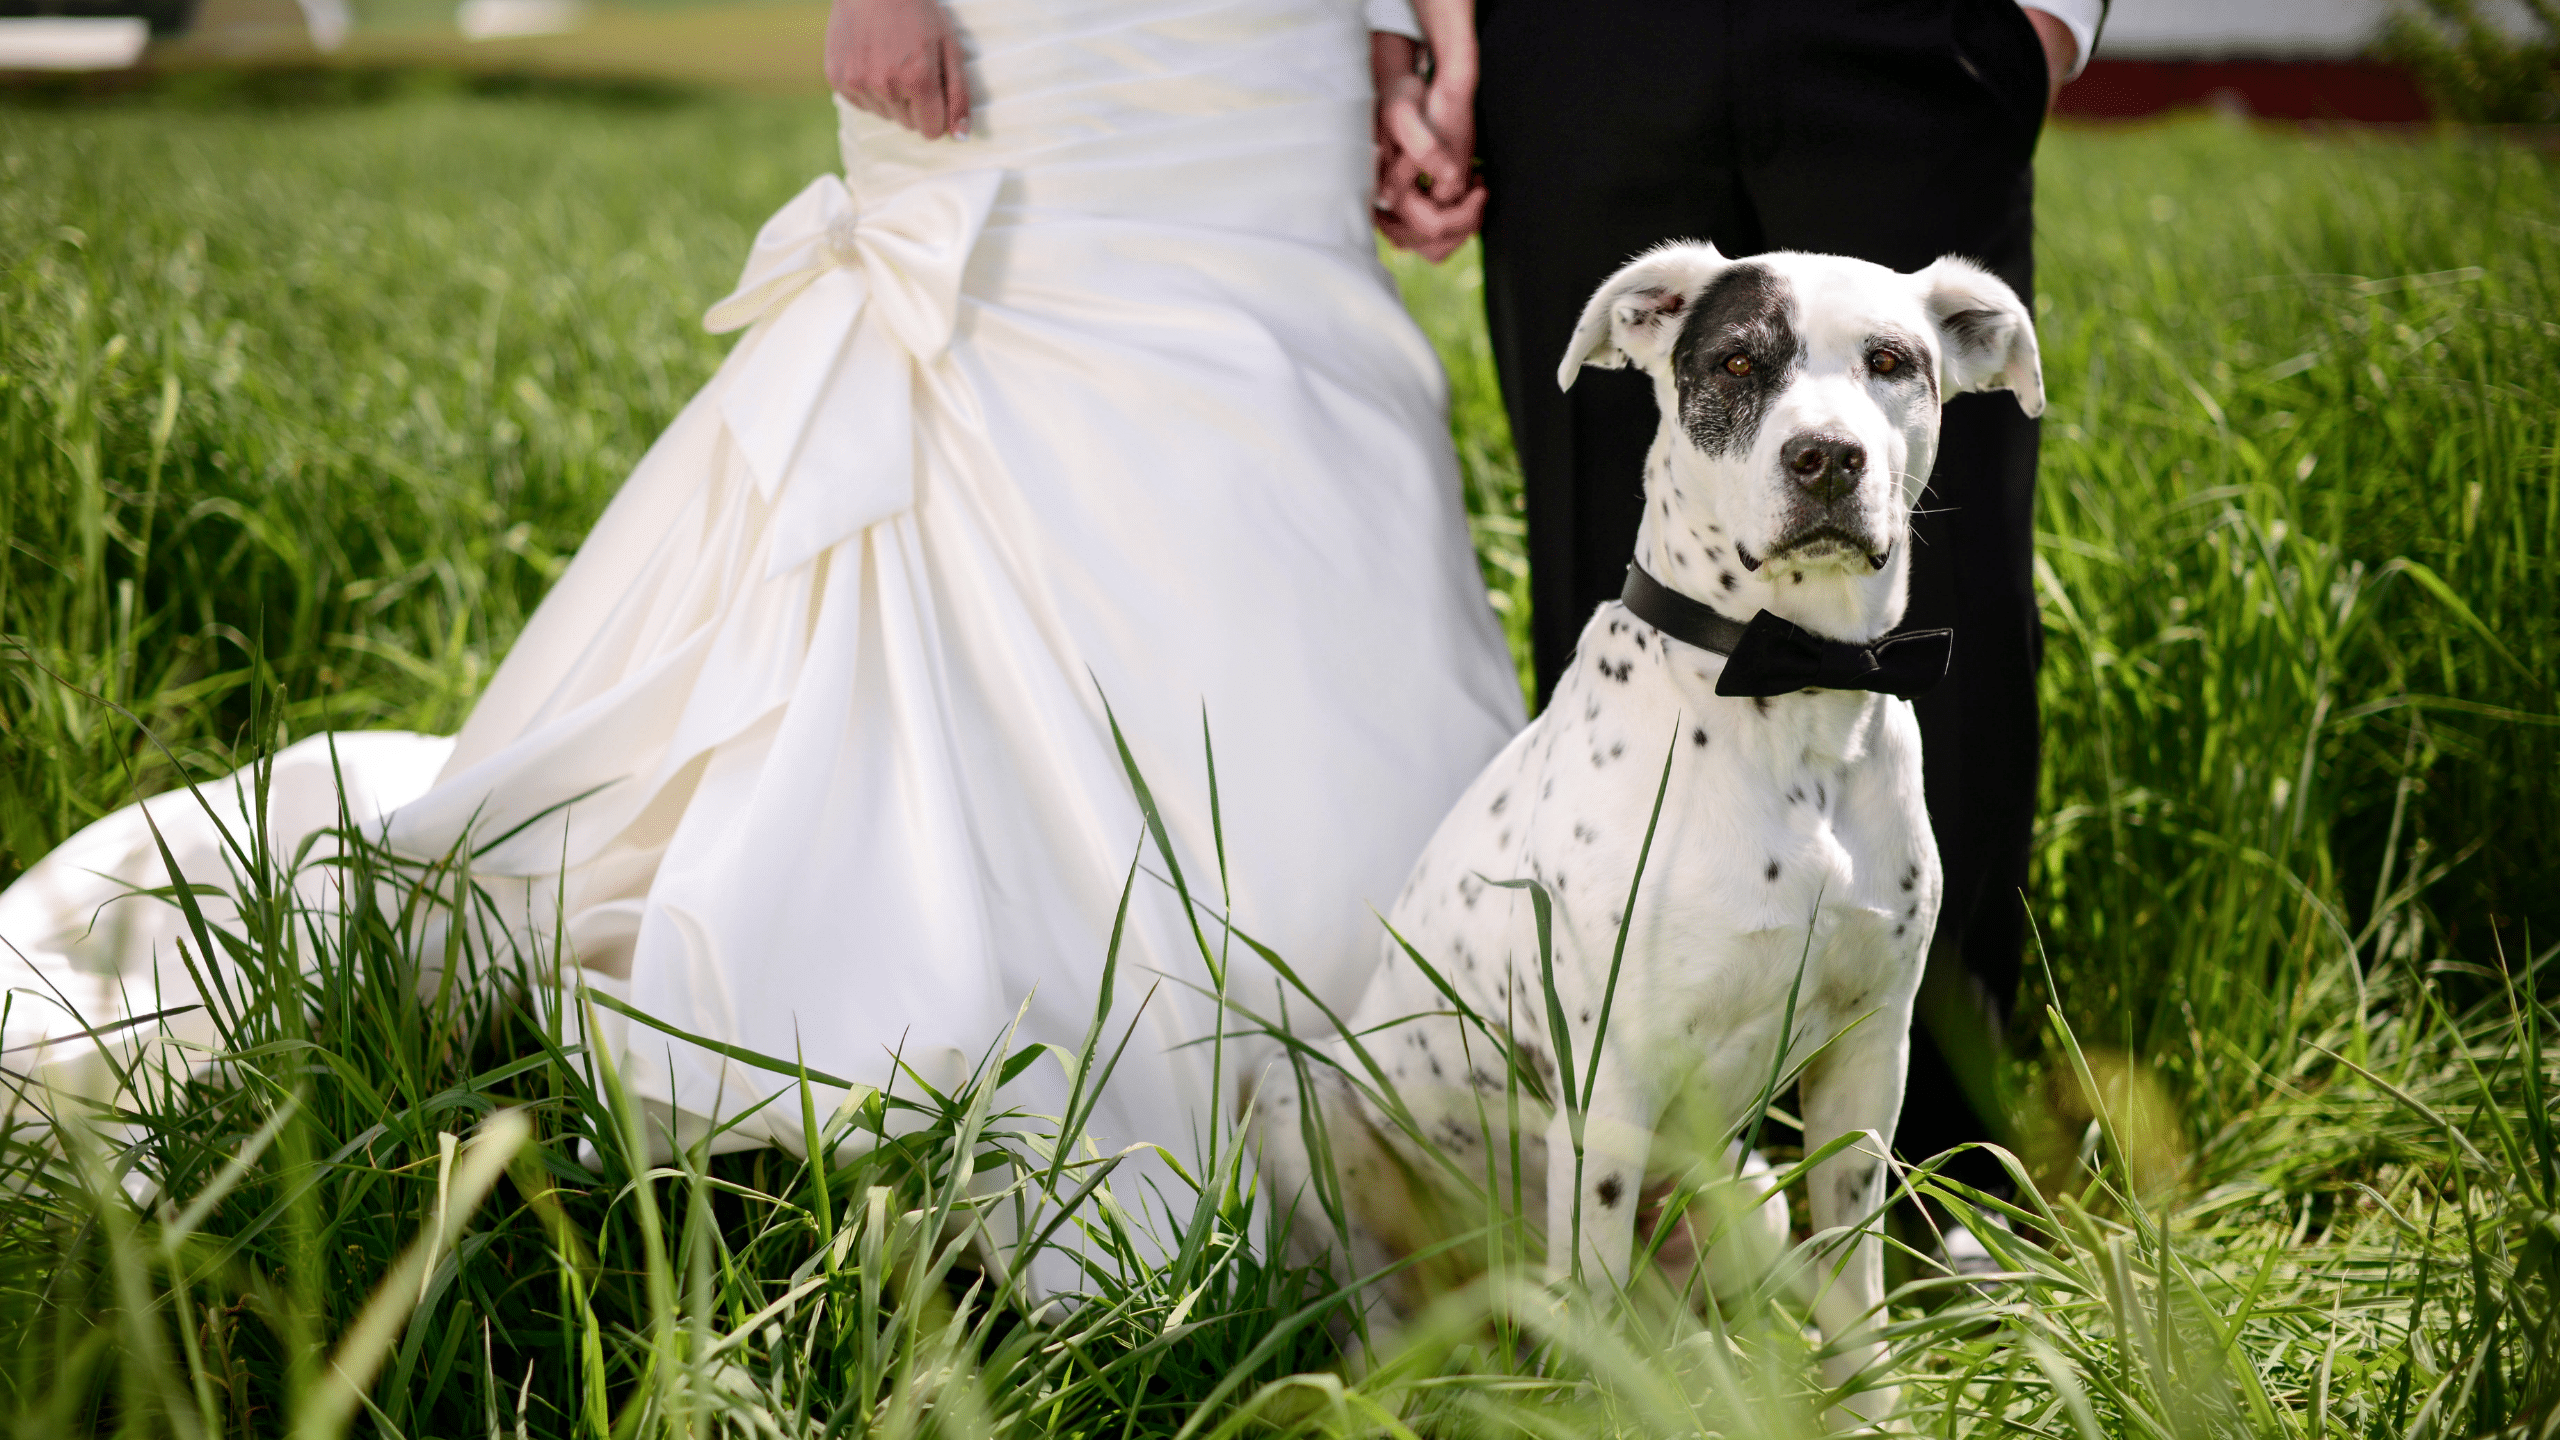 wedding services are part of muddy paws pet care concierge services where we will help you have your dog a part of your wedding day